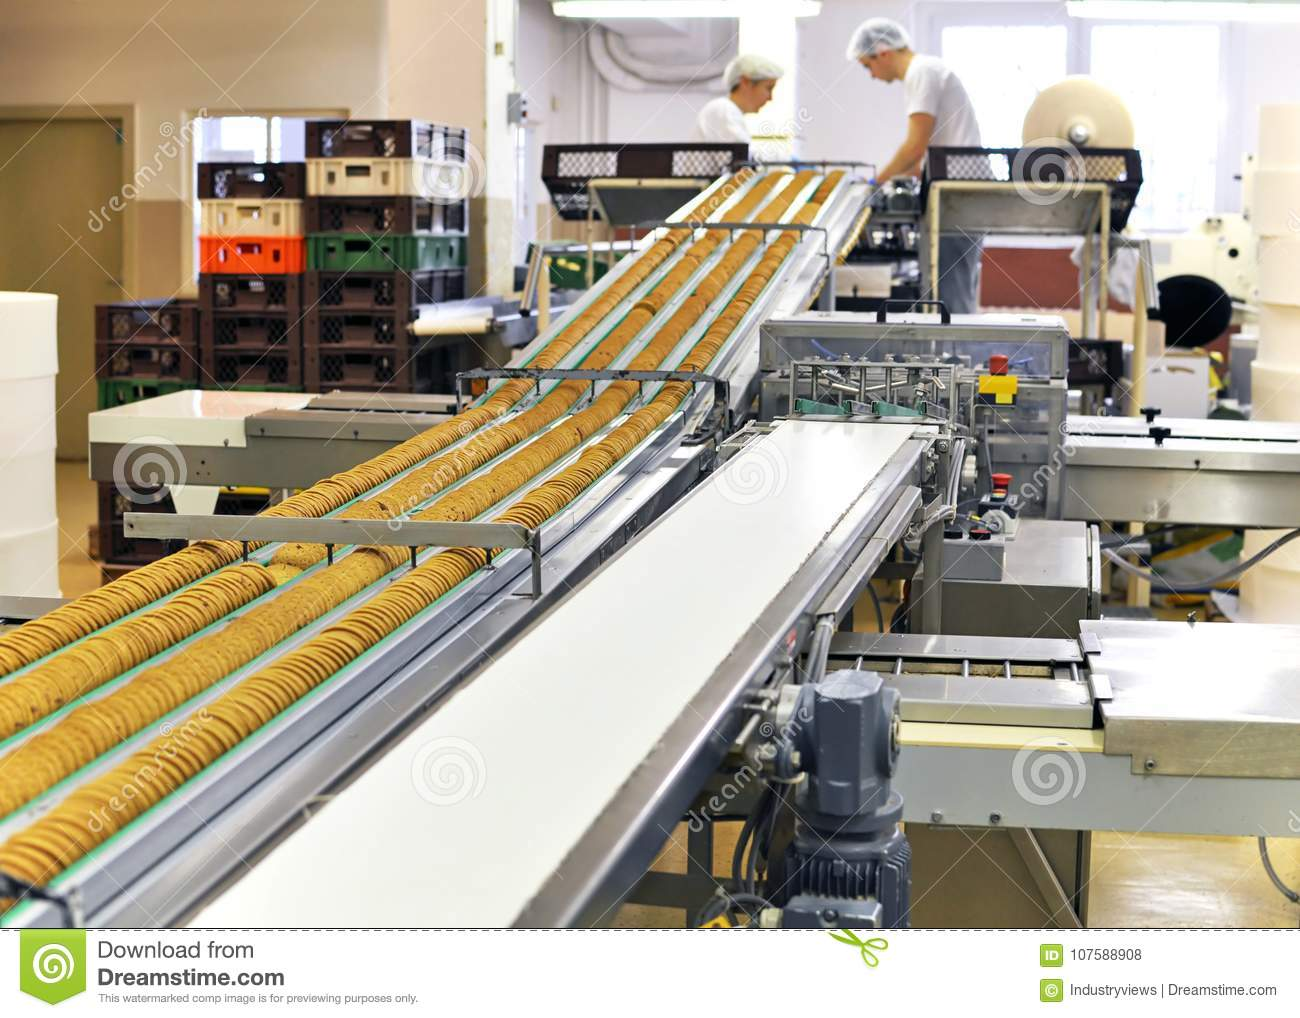 Conveyor belt with biscuits in a food factory - machinery equipm